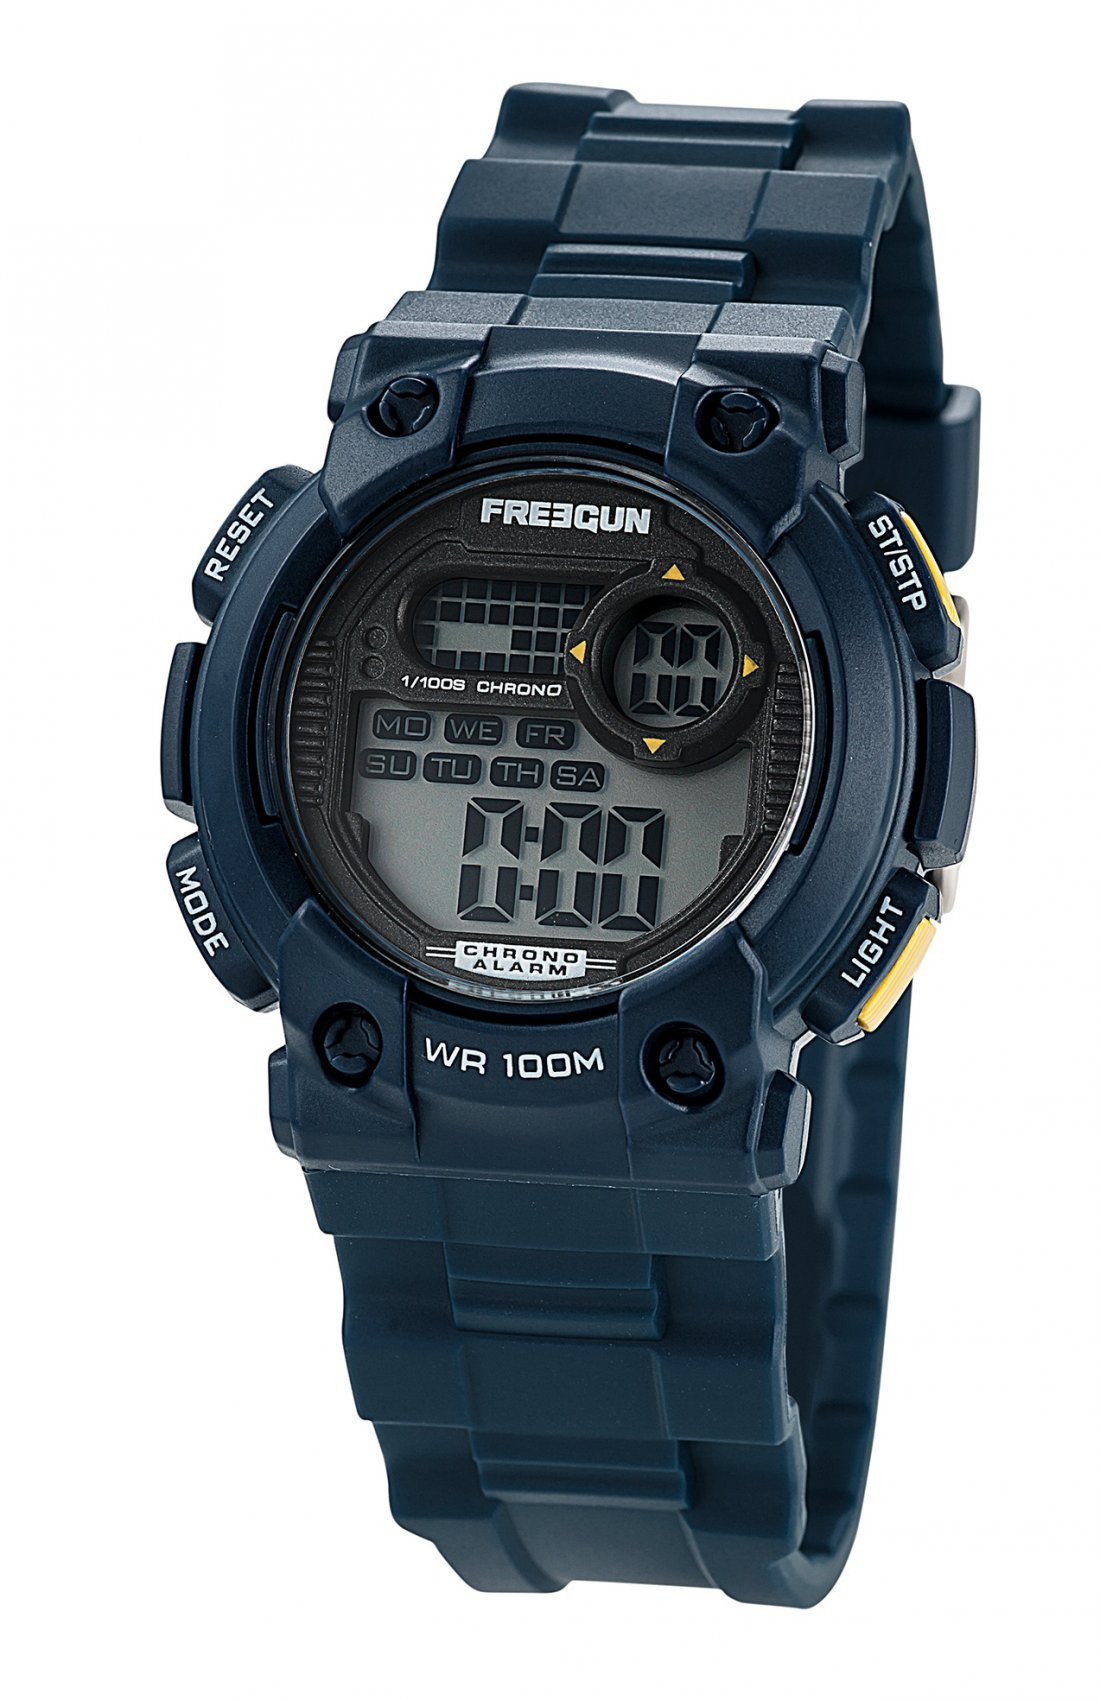 Montre lazer noire freegun (photo)